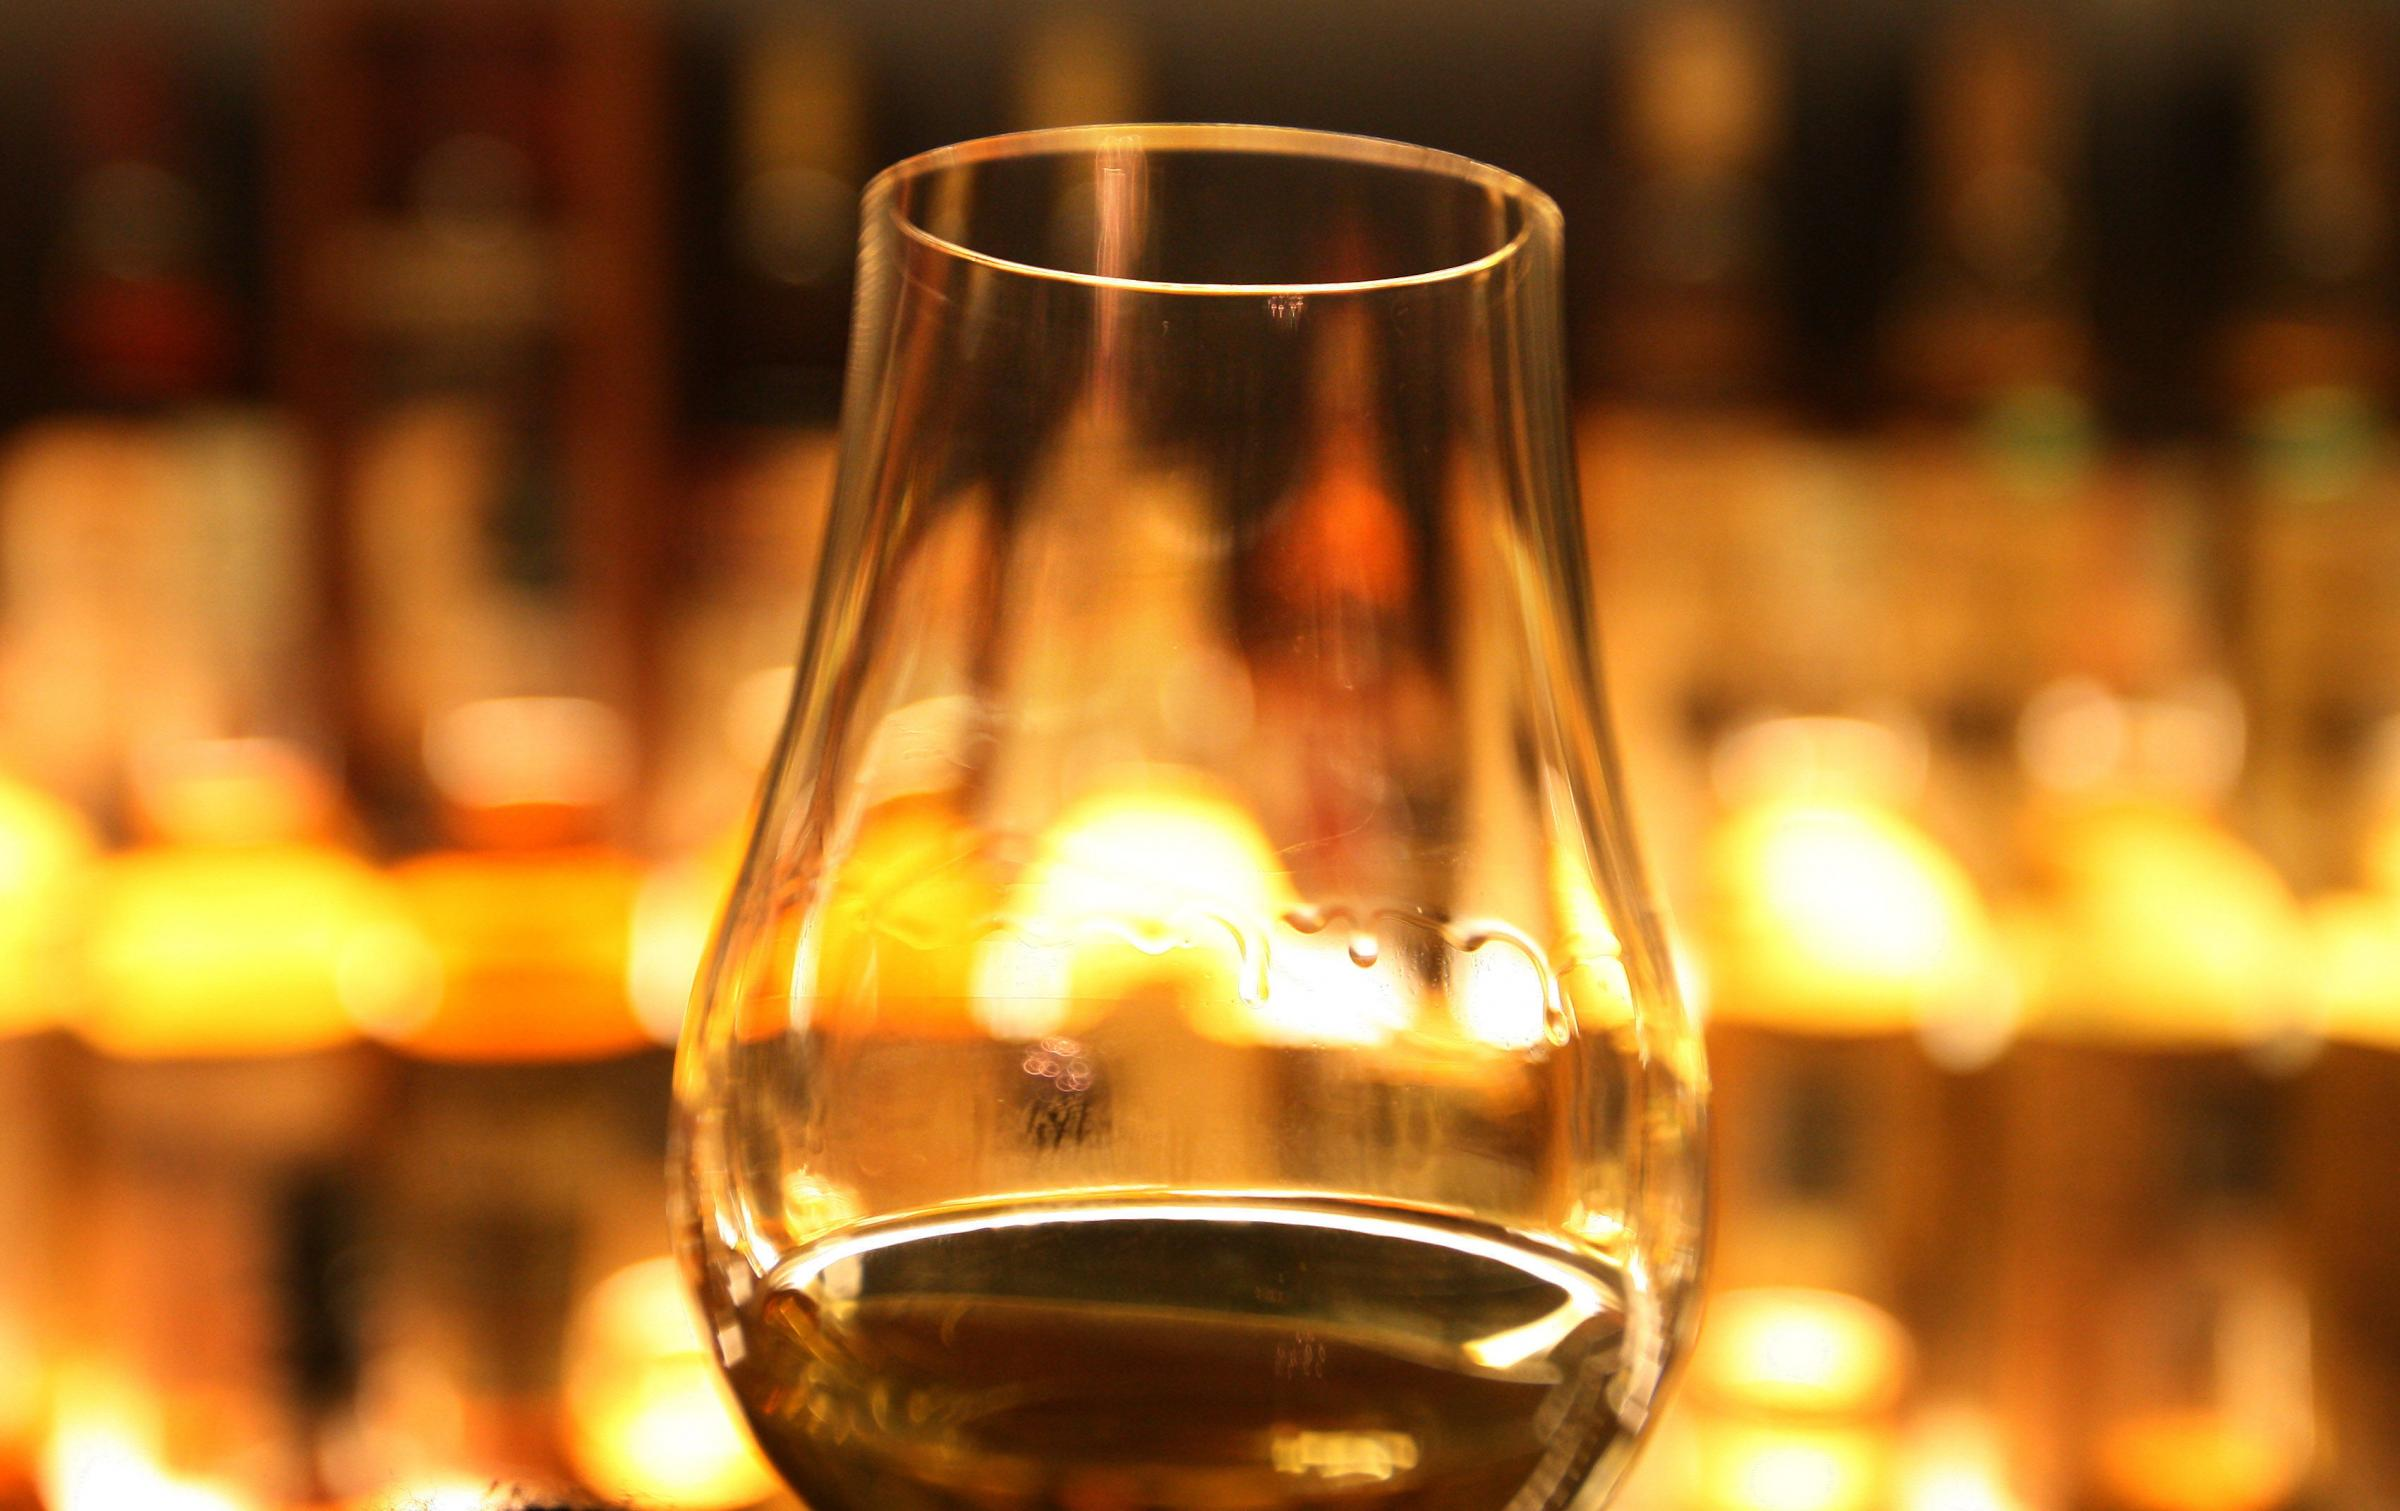 The recognition will help protect the status of Scotch whisky